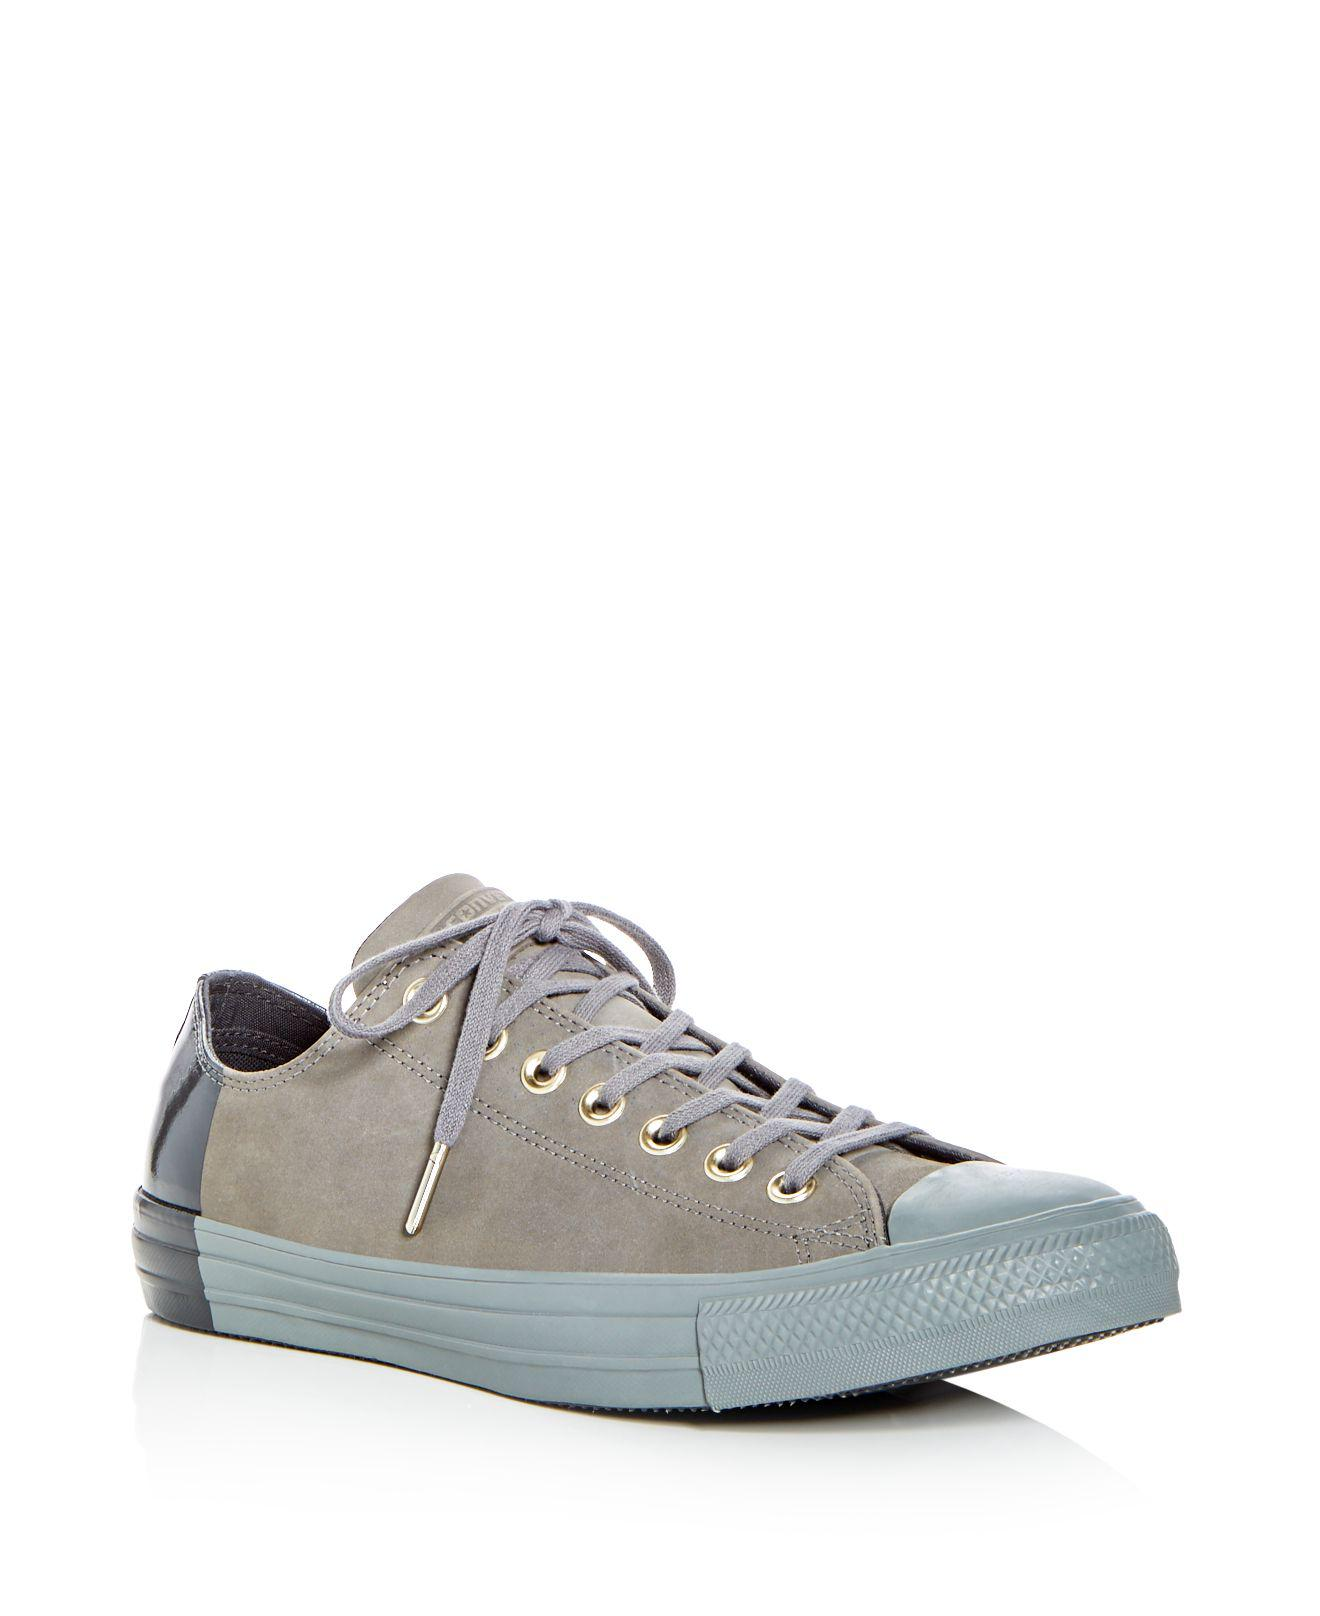 Missguided Sale Converse Chuck Taylor All Star Ox Jade for Women